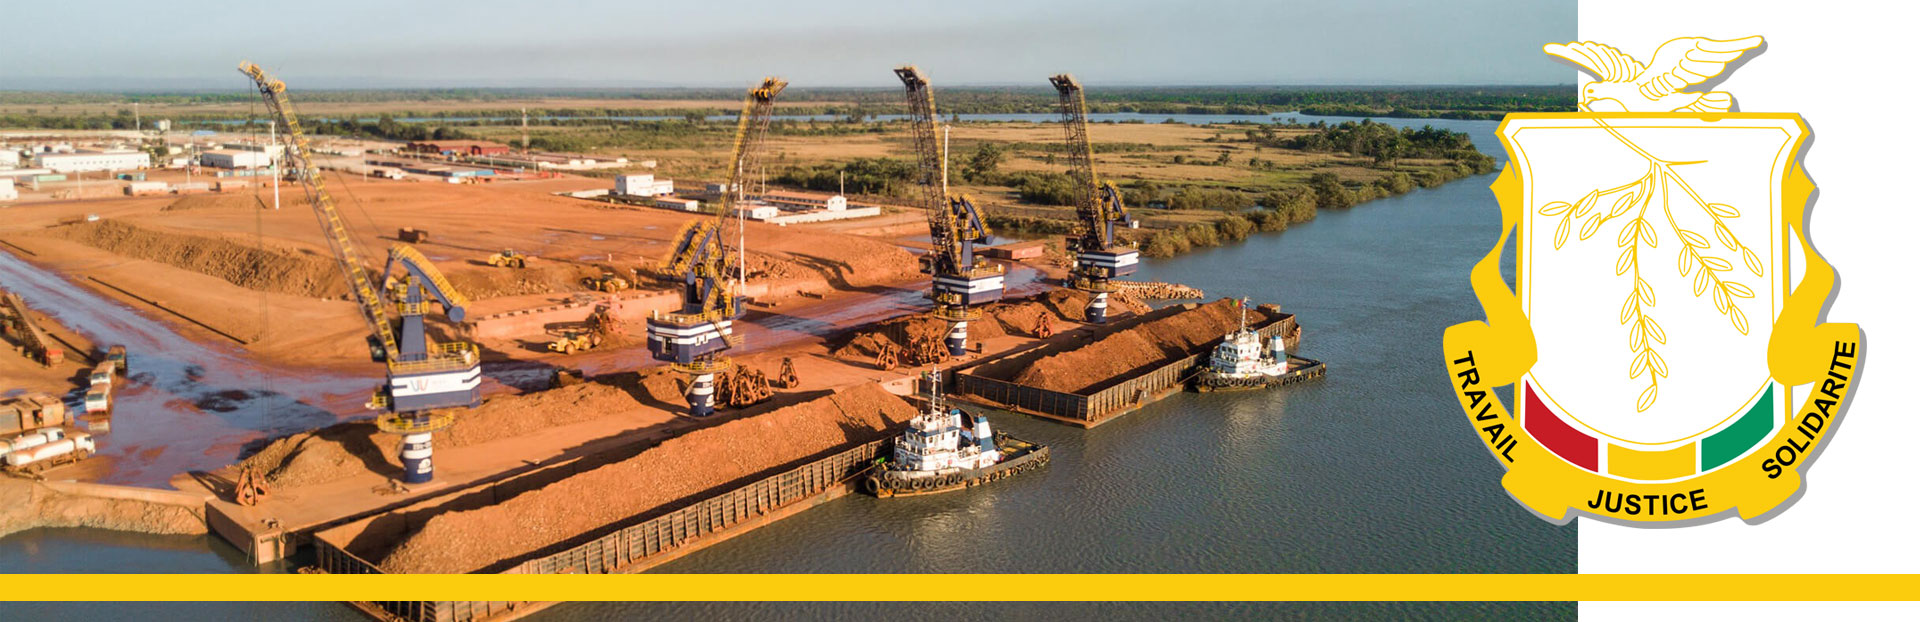 Guinea Mining Project Header